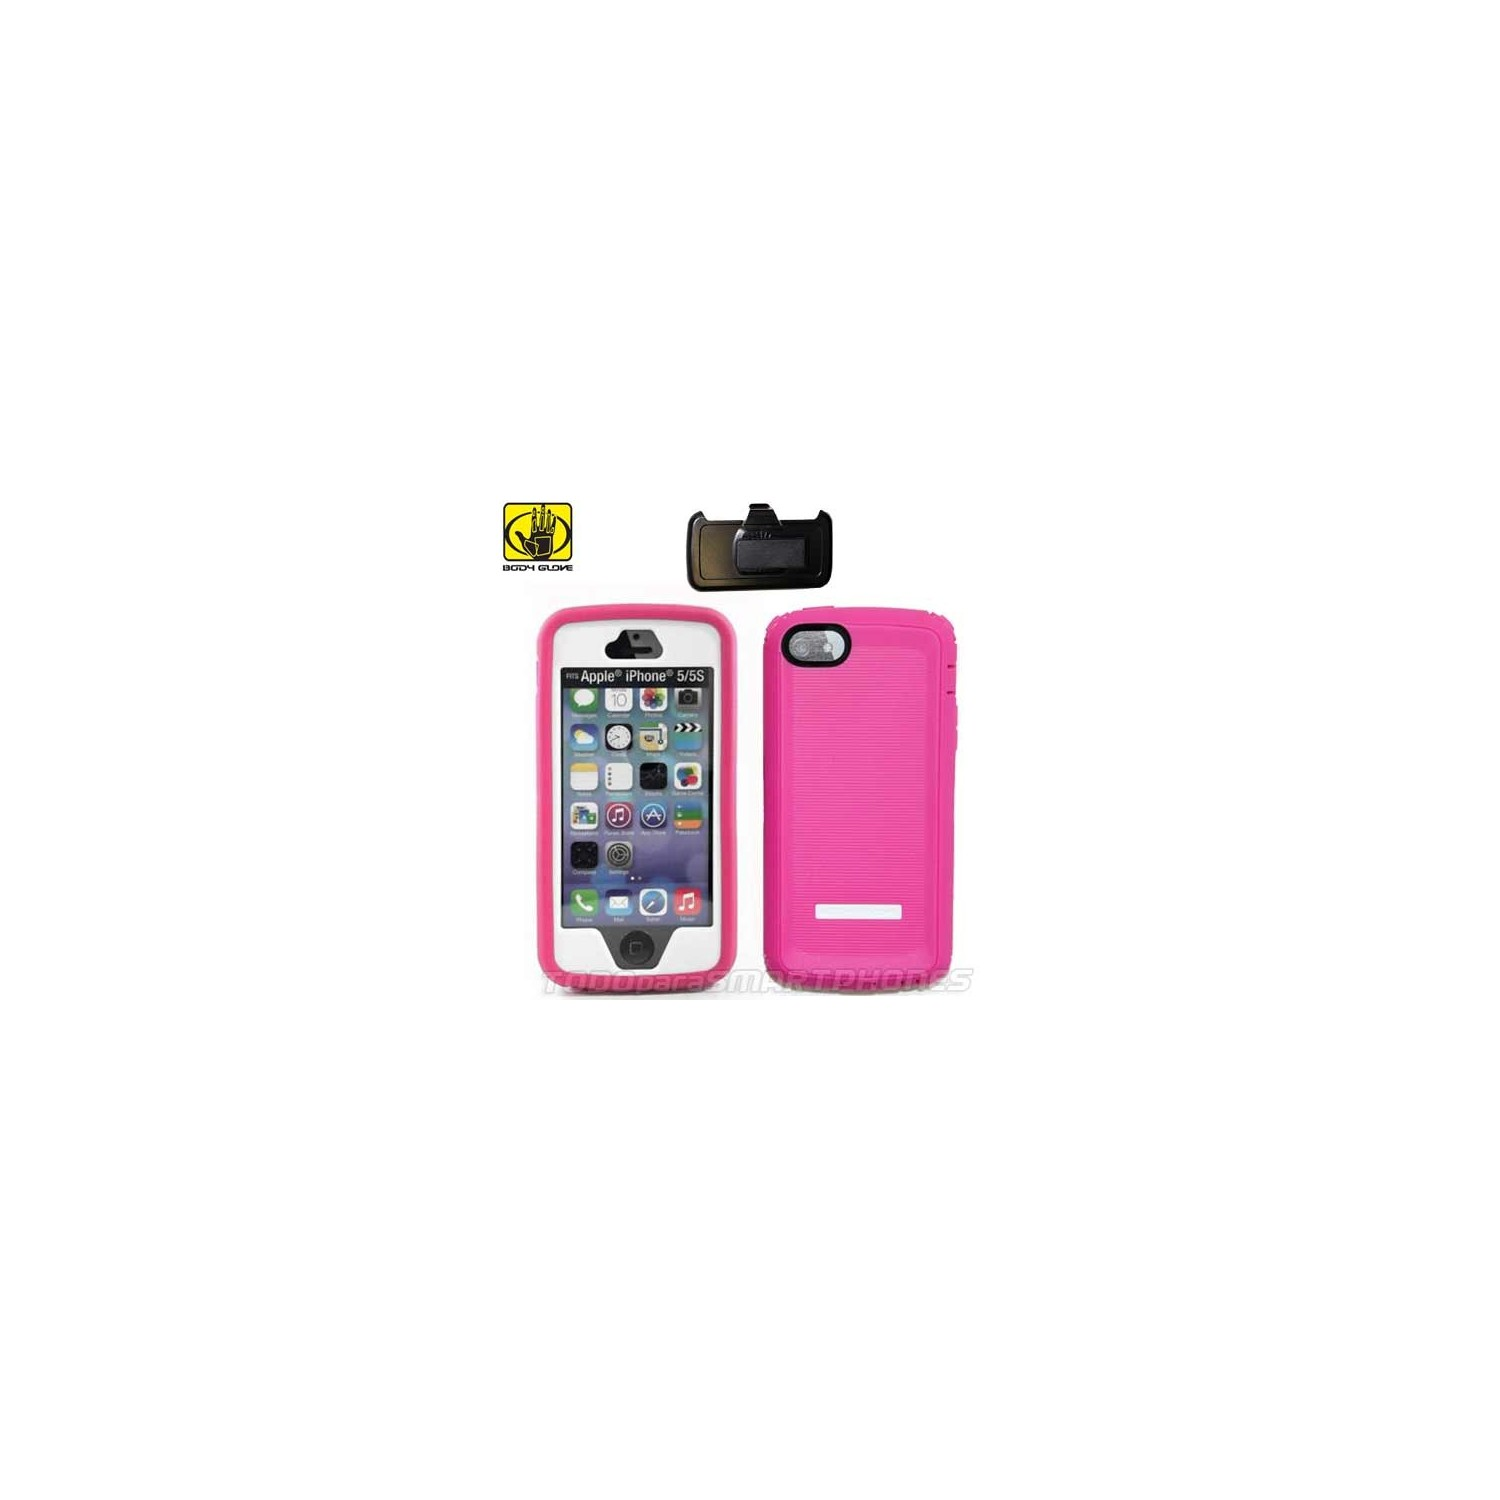 Case - Body Glove for iPhone SE/5s/5 Thougsuit pink